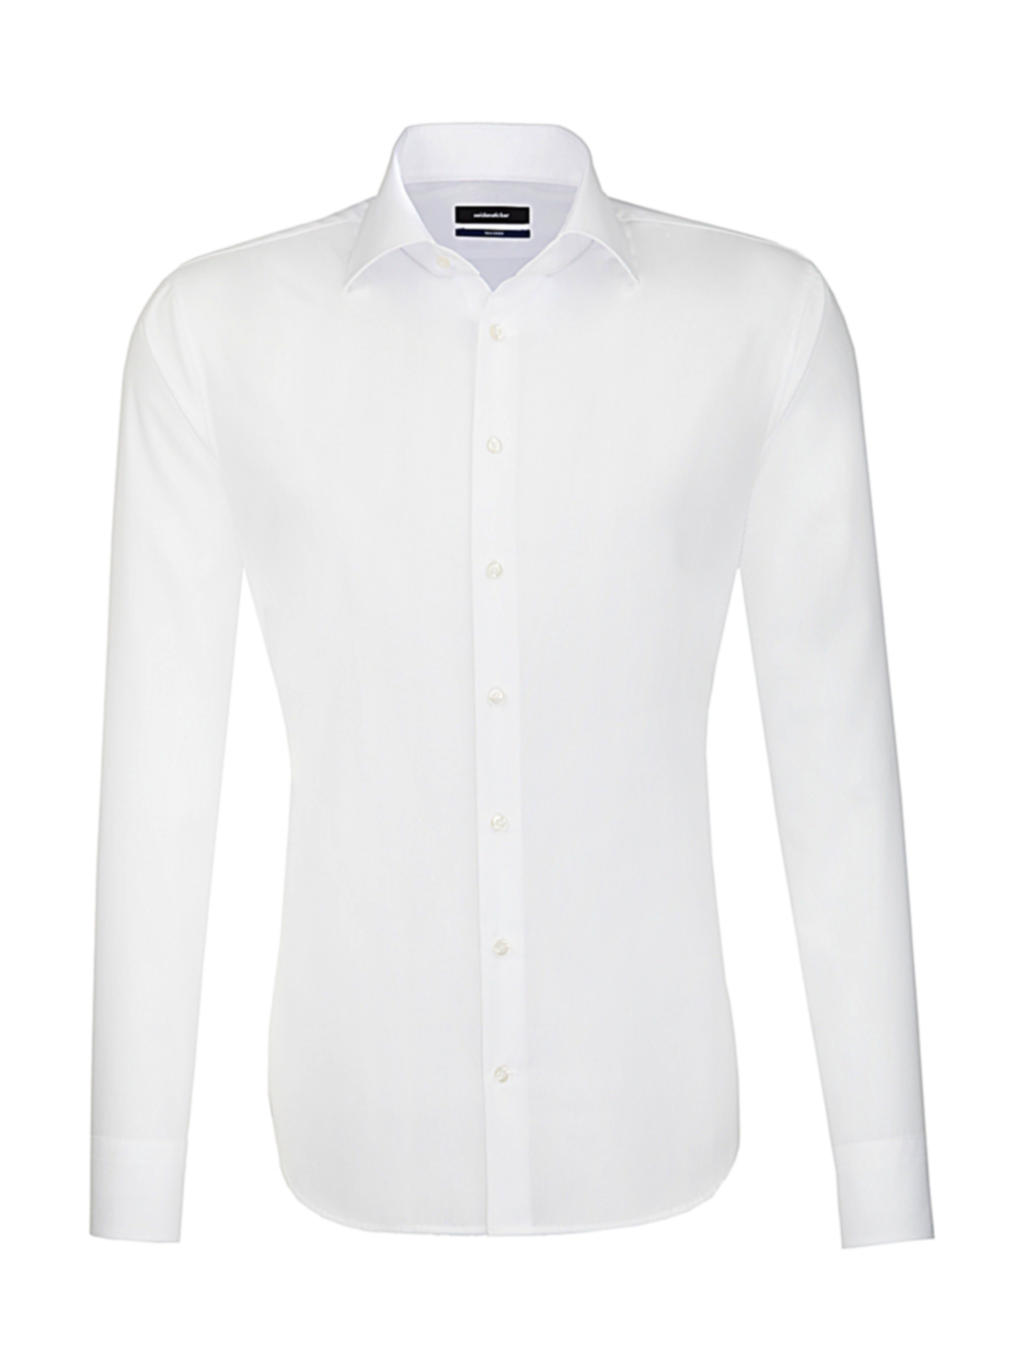 Seidensticker Tailored Fit Shirt LS